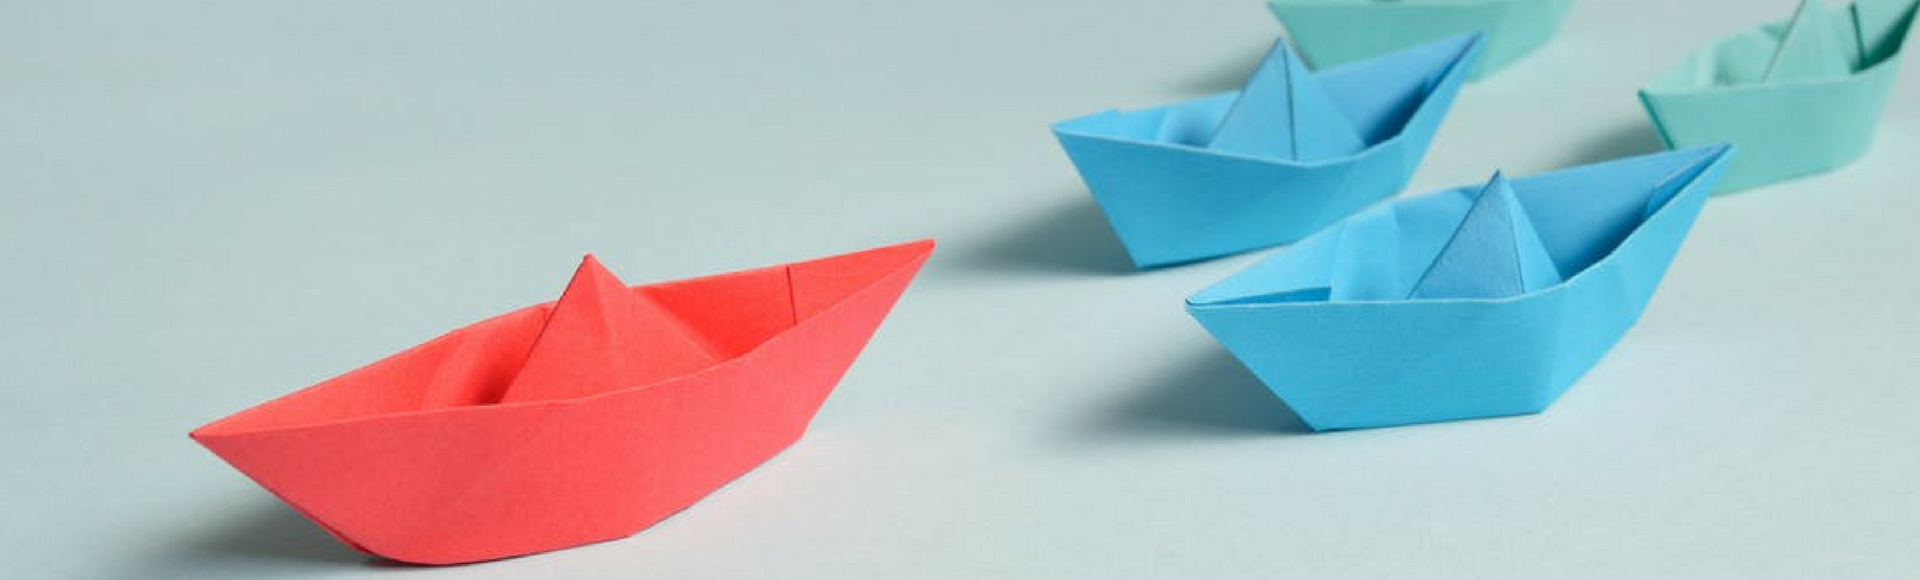 Small red oragami boat leads the way for blue boats and green boats behind it, reflecting show-don't-tell leadership tactics.